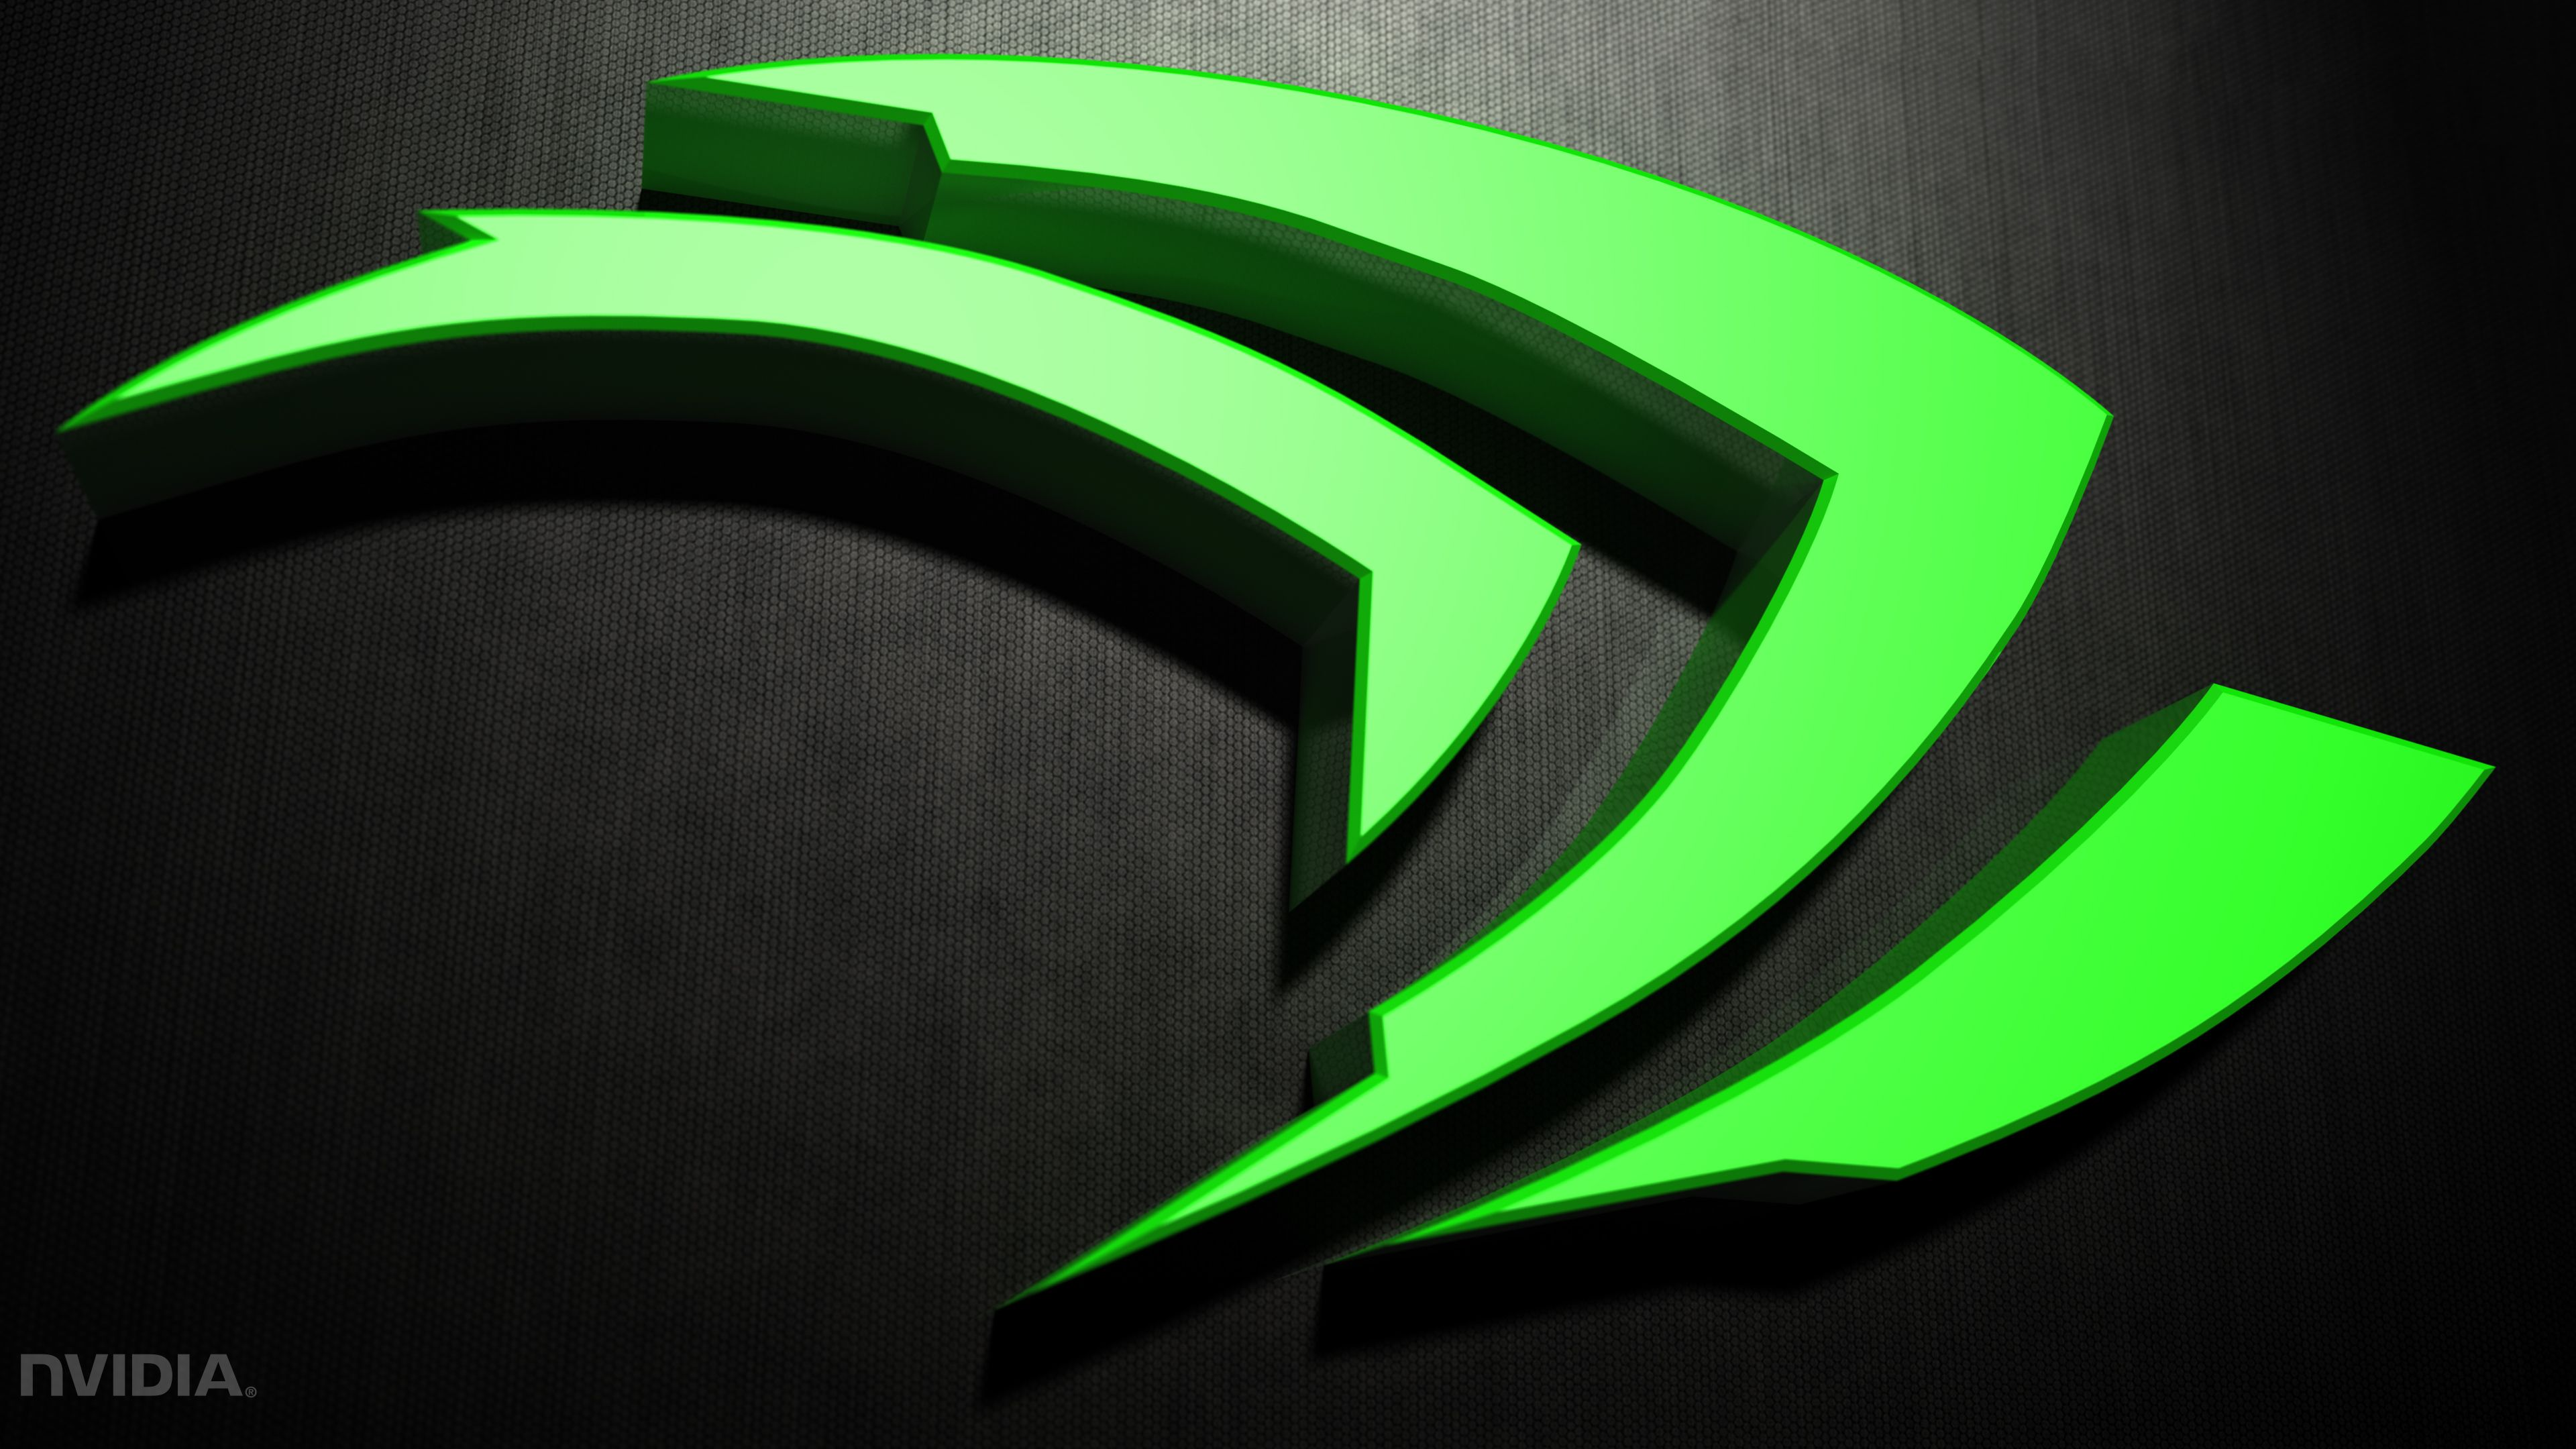 Nvidia Hd Wallpapers Backgrounds Wallpaper In 2019